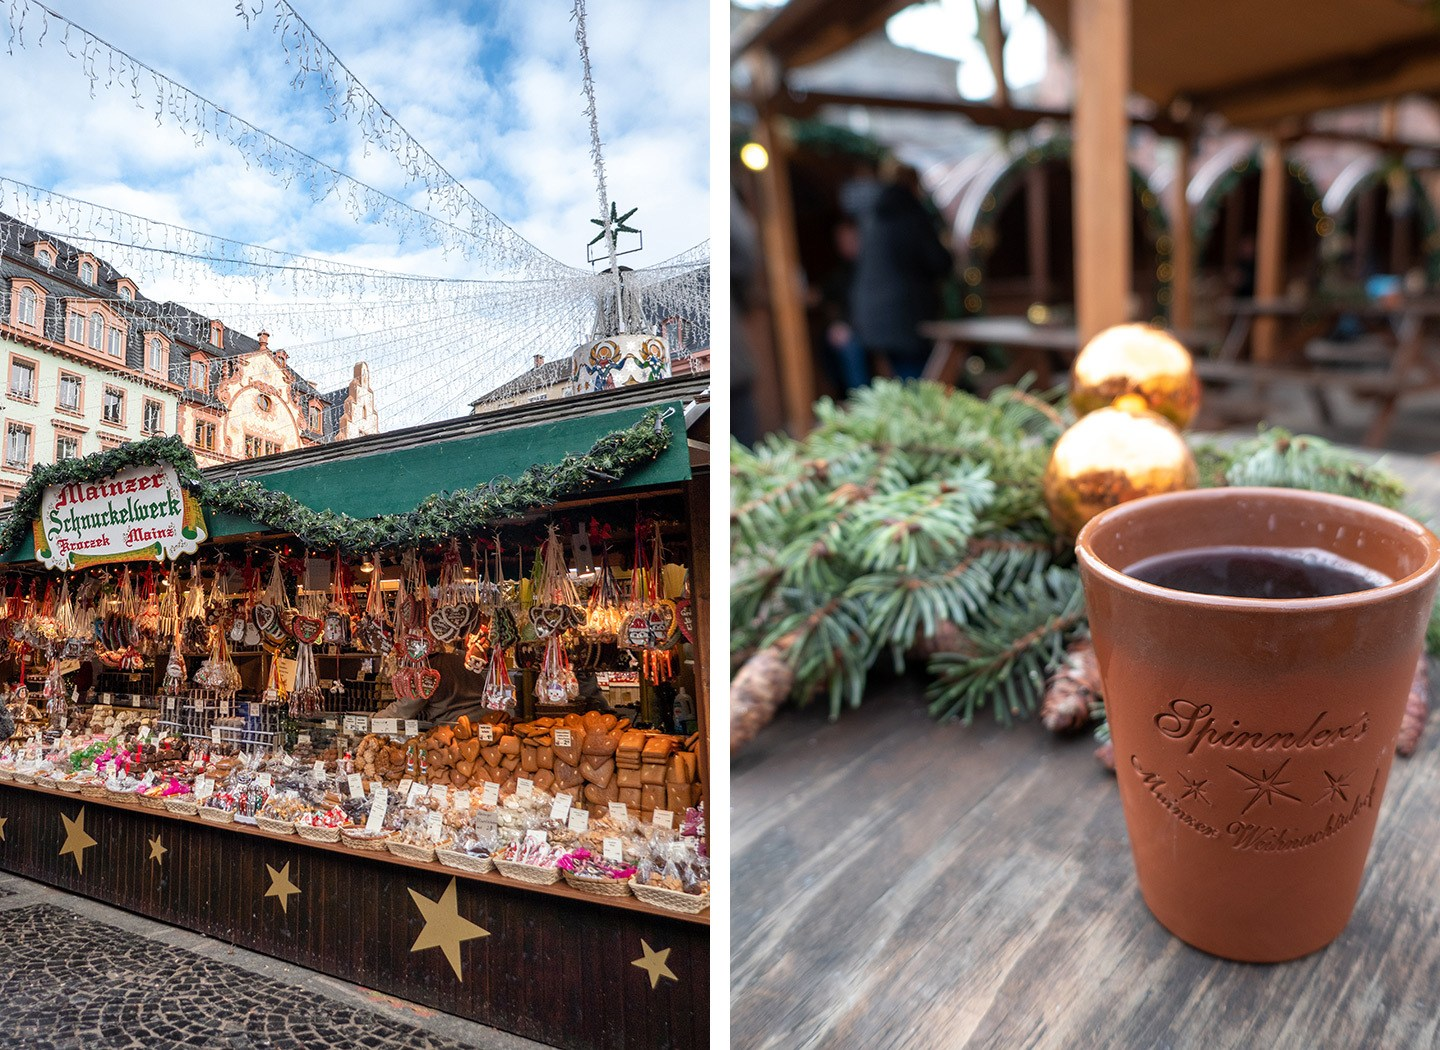 Mainz Christmas market, Germany